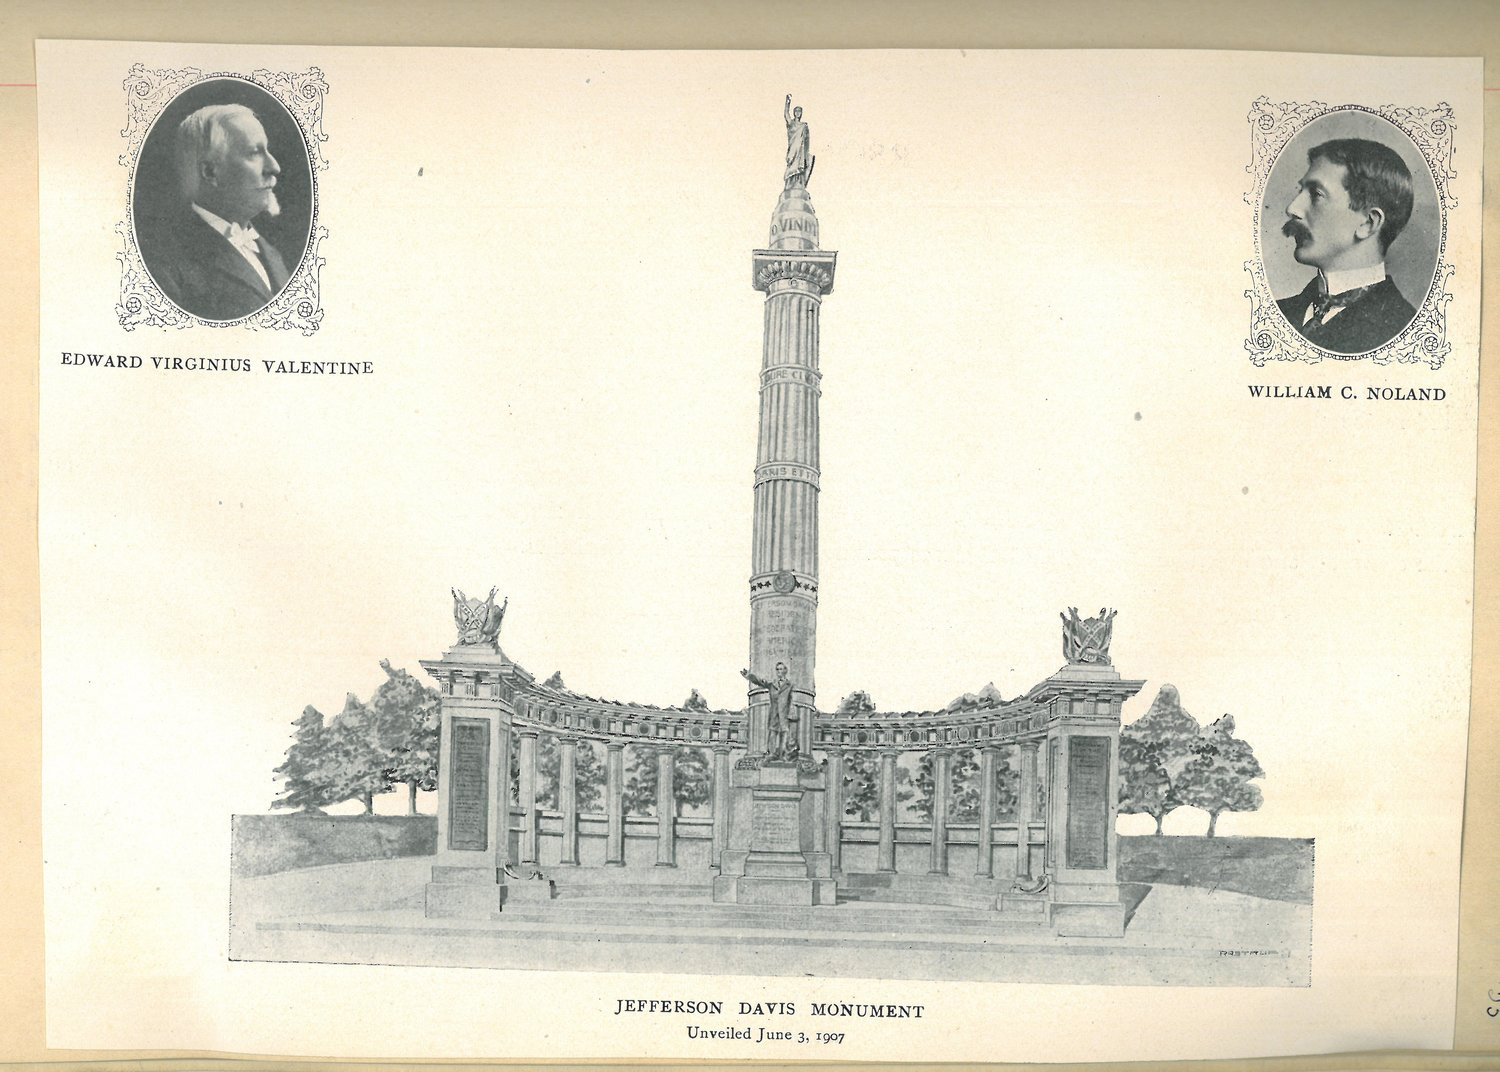 """A print of the Jefferson Davis monument in Richmond, Virginia. The full monument consists of a statue to Davis with a large column behind him. Atop the column stands """"Miss Confederacy."""" Fanning out in an arc at the base of the column is a neoclassical structure. Side portraits of Edward Valentine (left) and William Noland (right) are next to the monument drawing."""